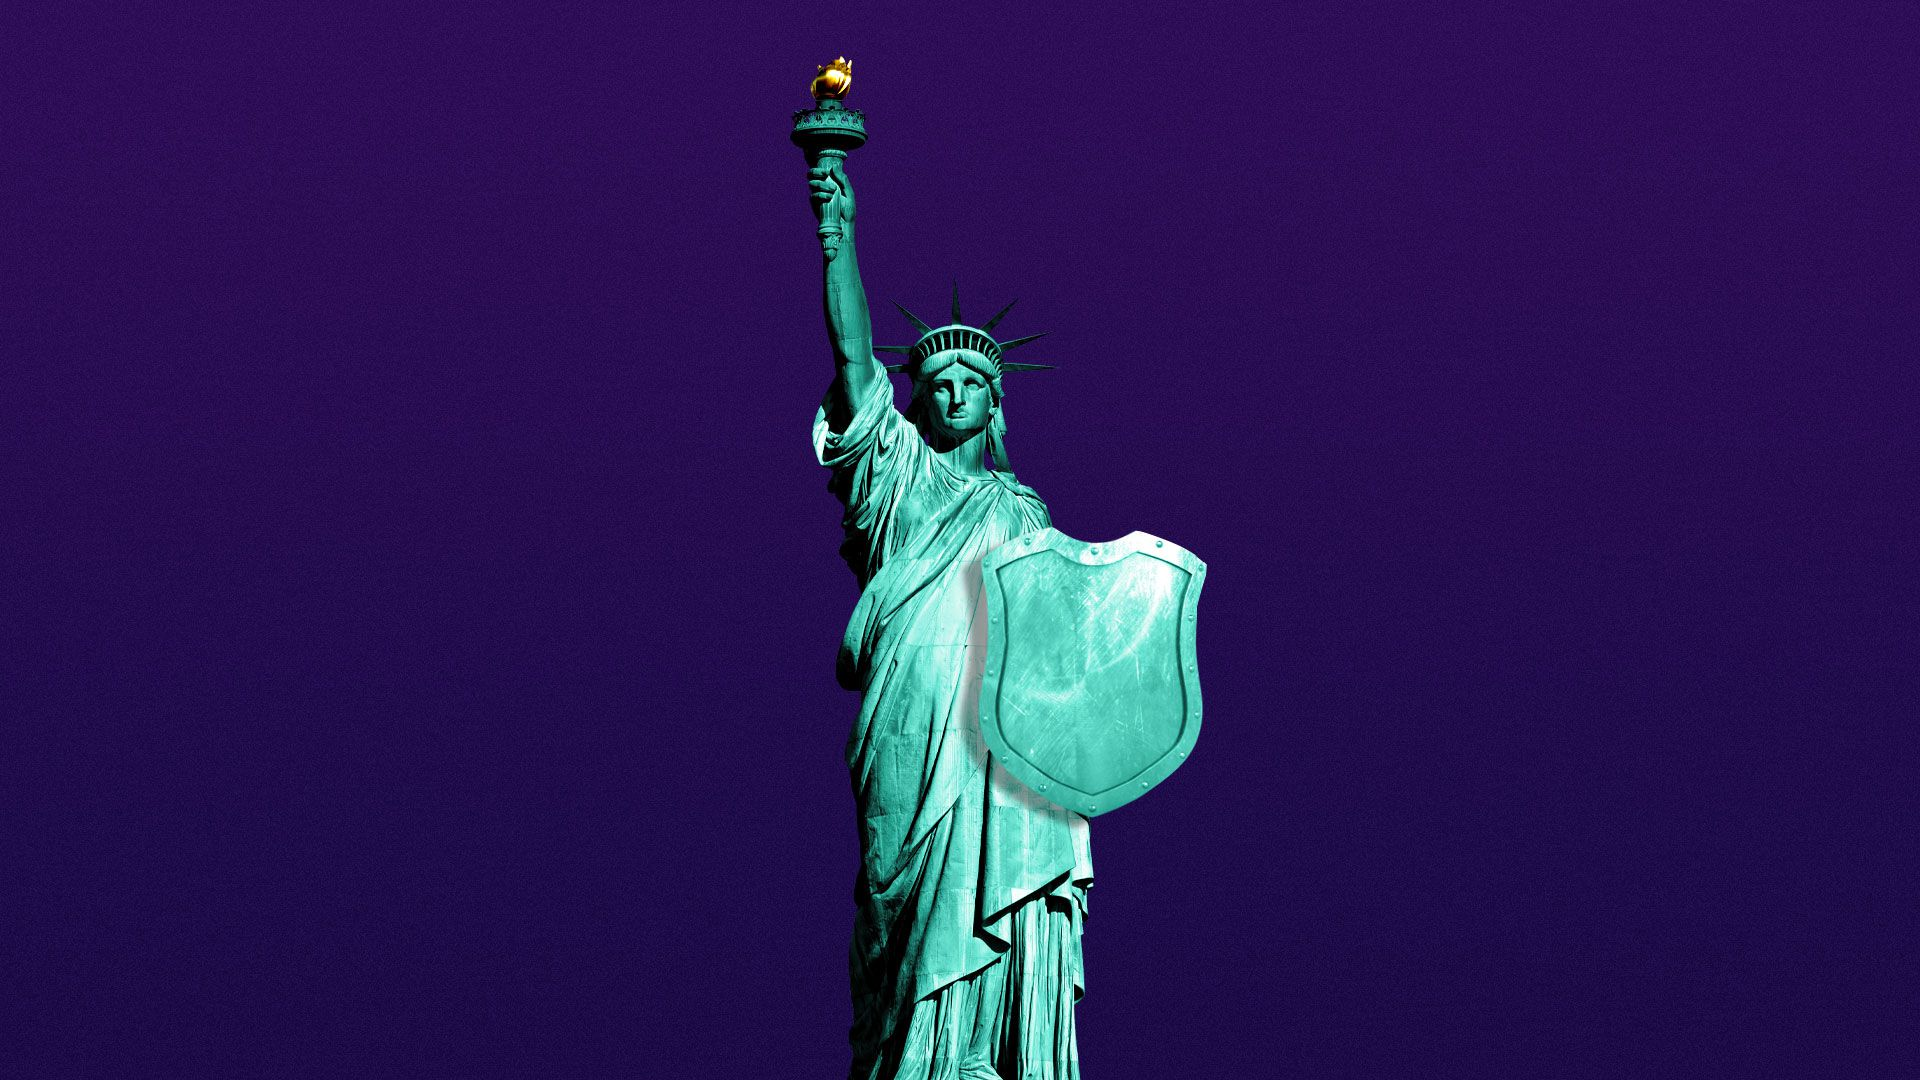 Illustration of Statue of Liberty holding a shield.